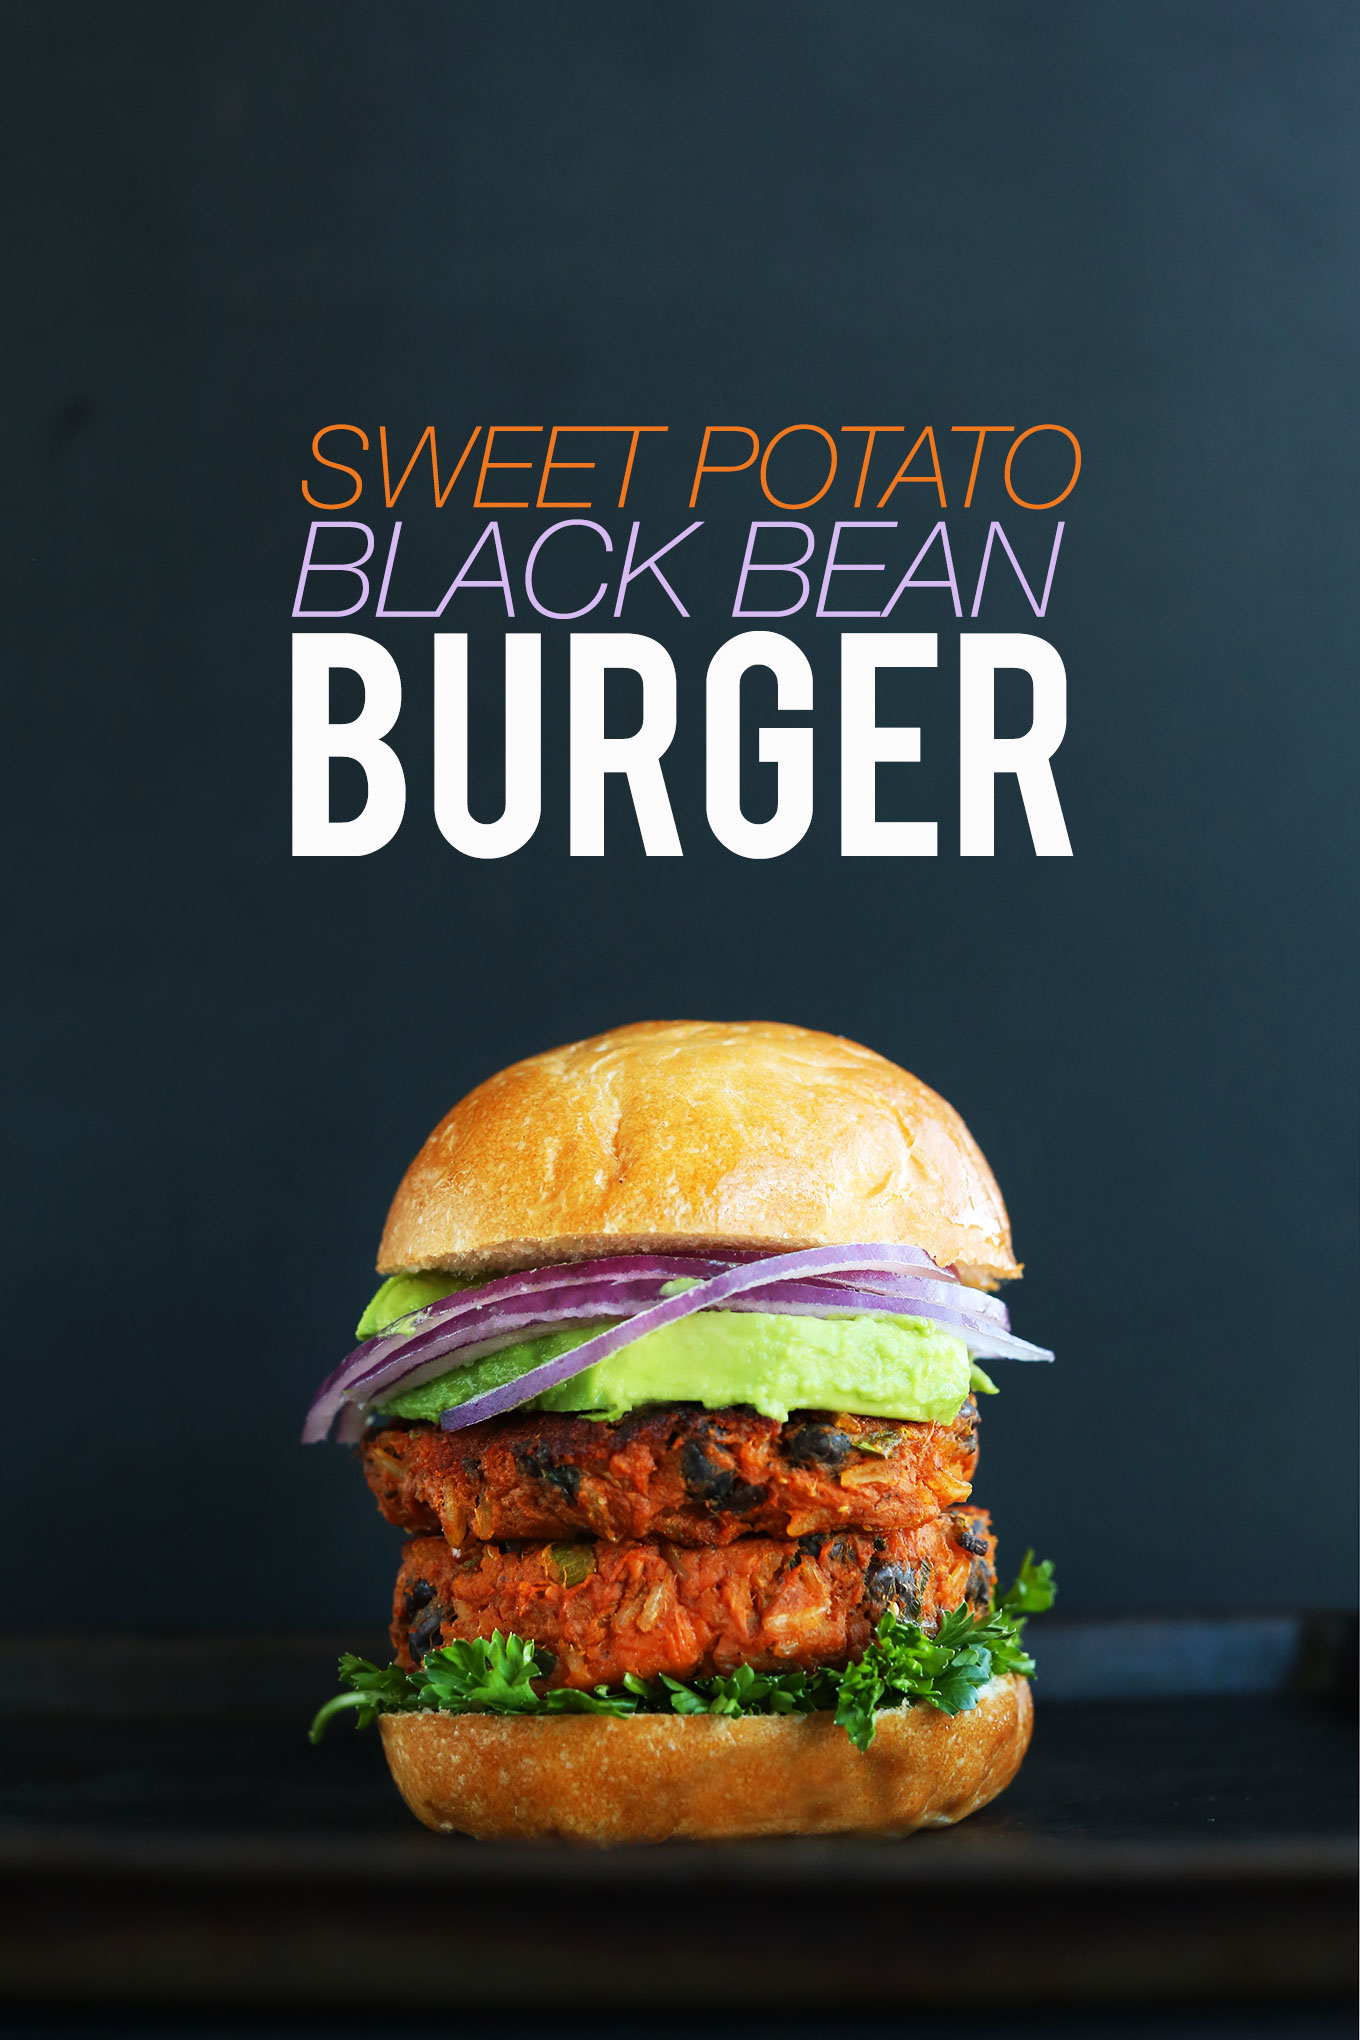 Hearty and delicious Sweet Potato Black Bean Burger with veggies on a bun